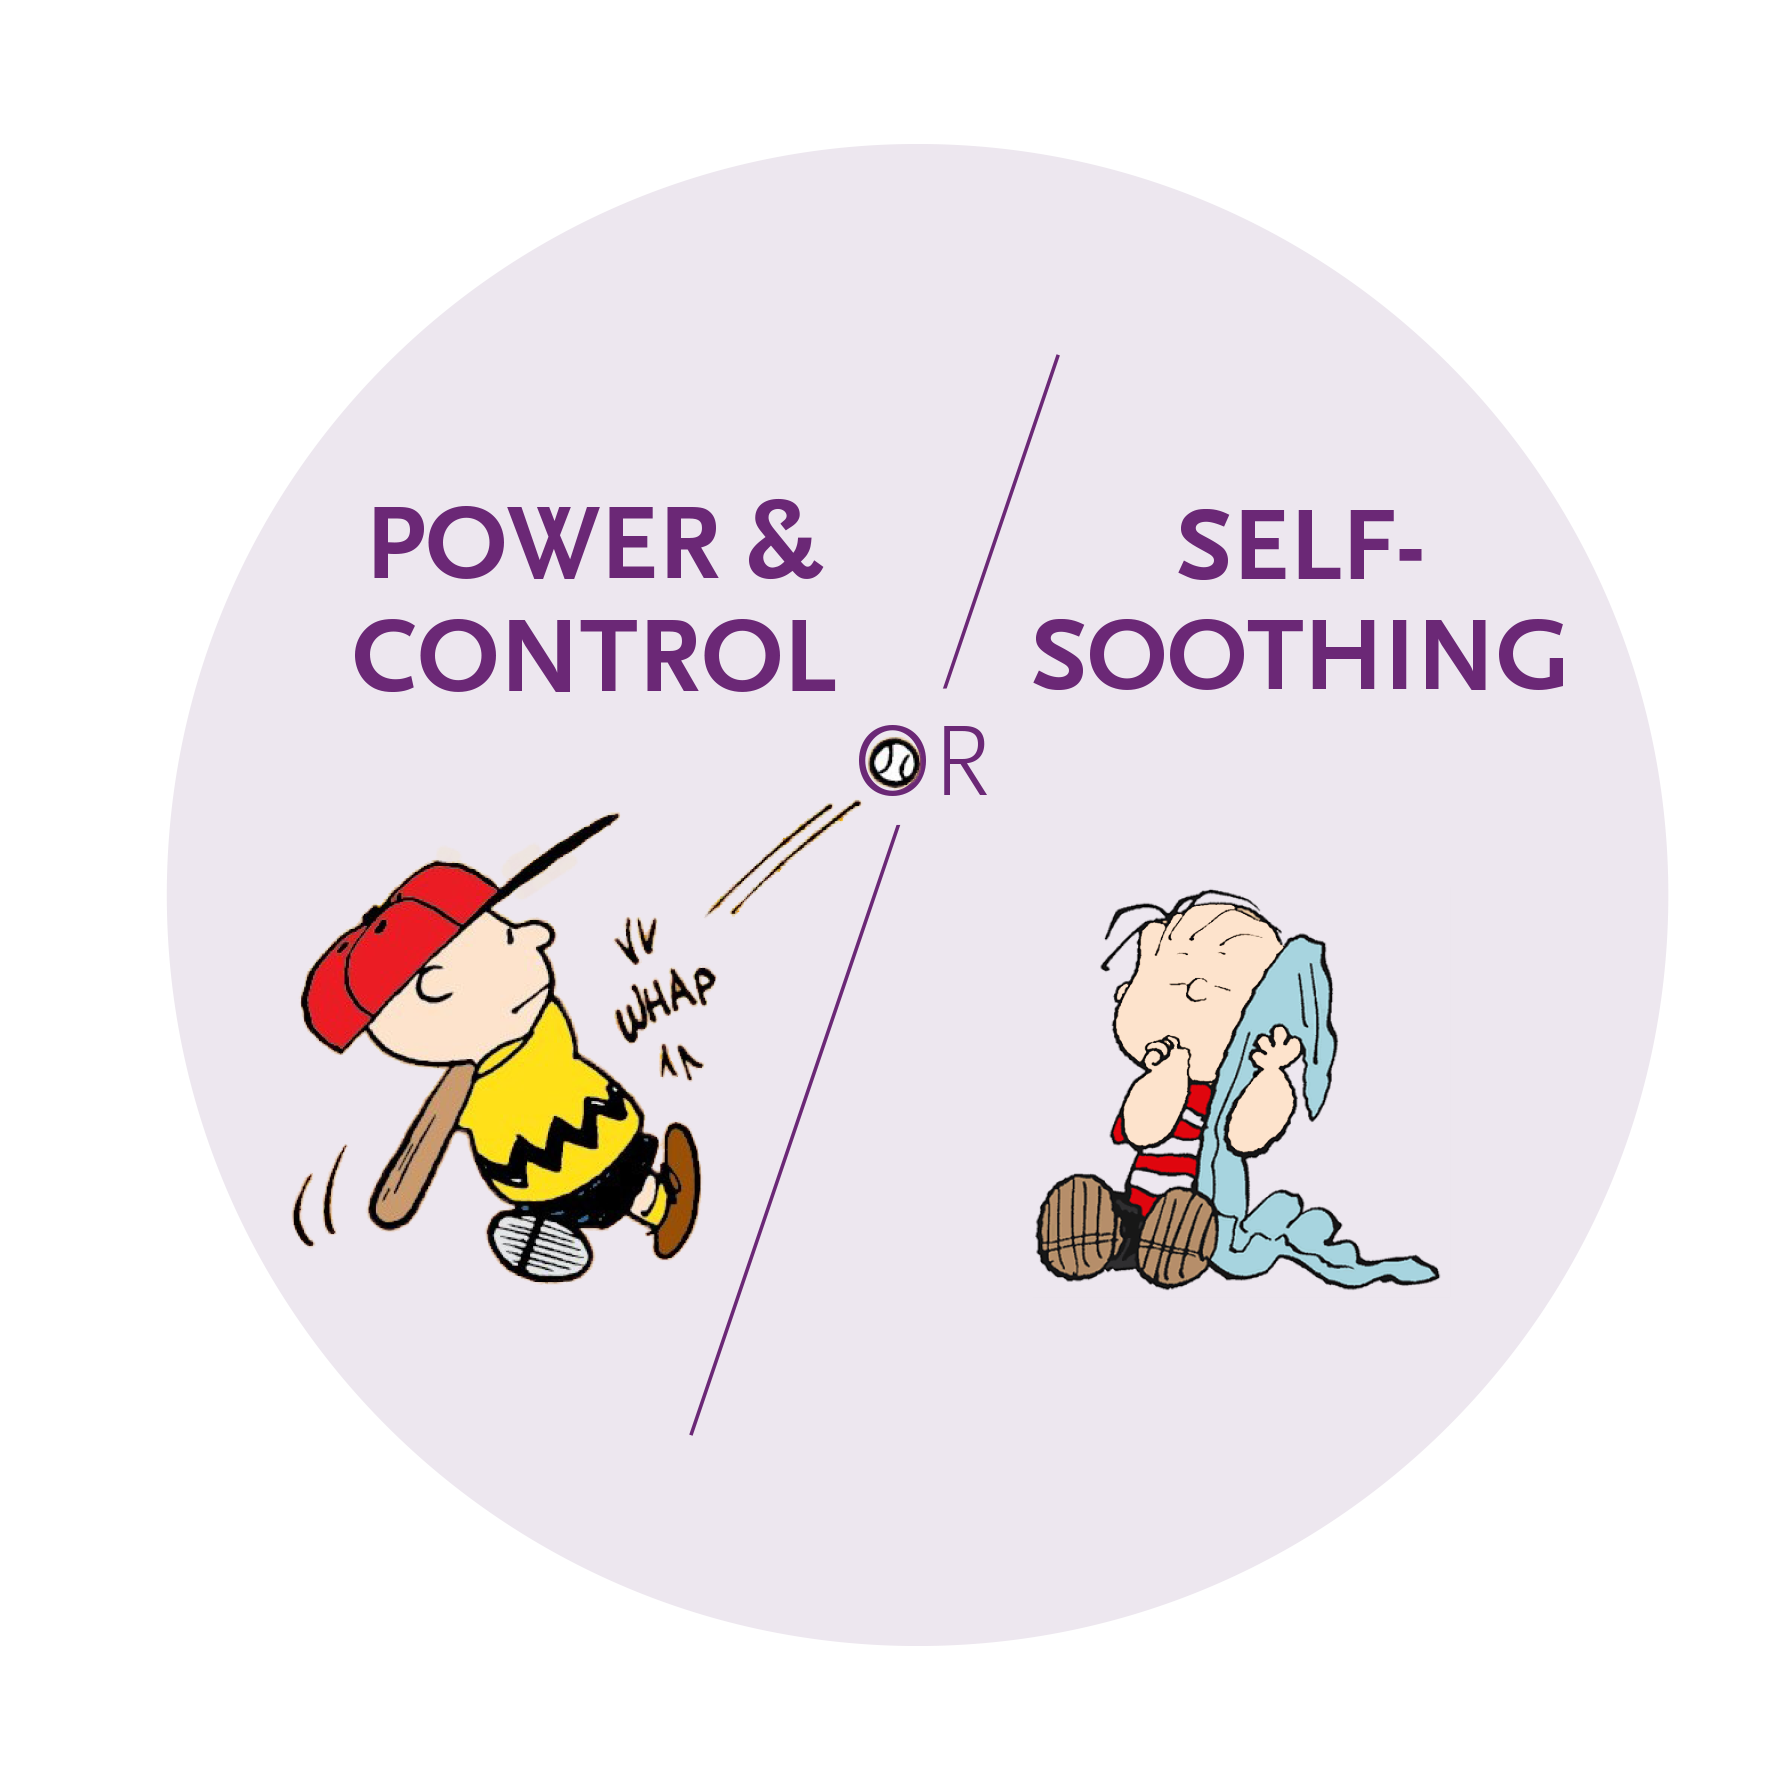 PSB is usually because of power and control factors or self soothing reasons